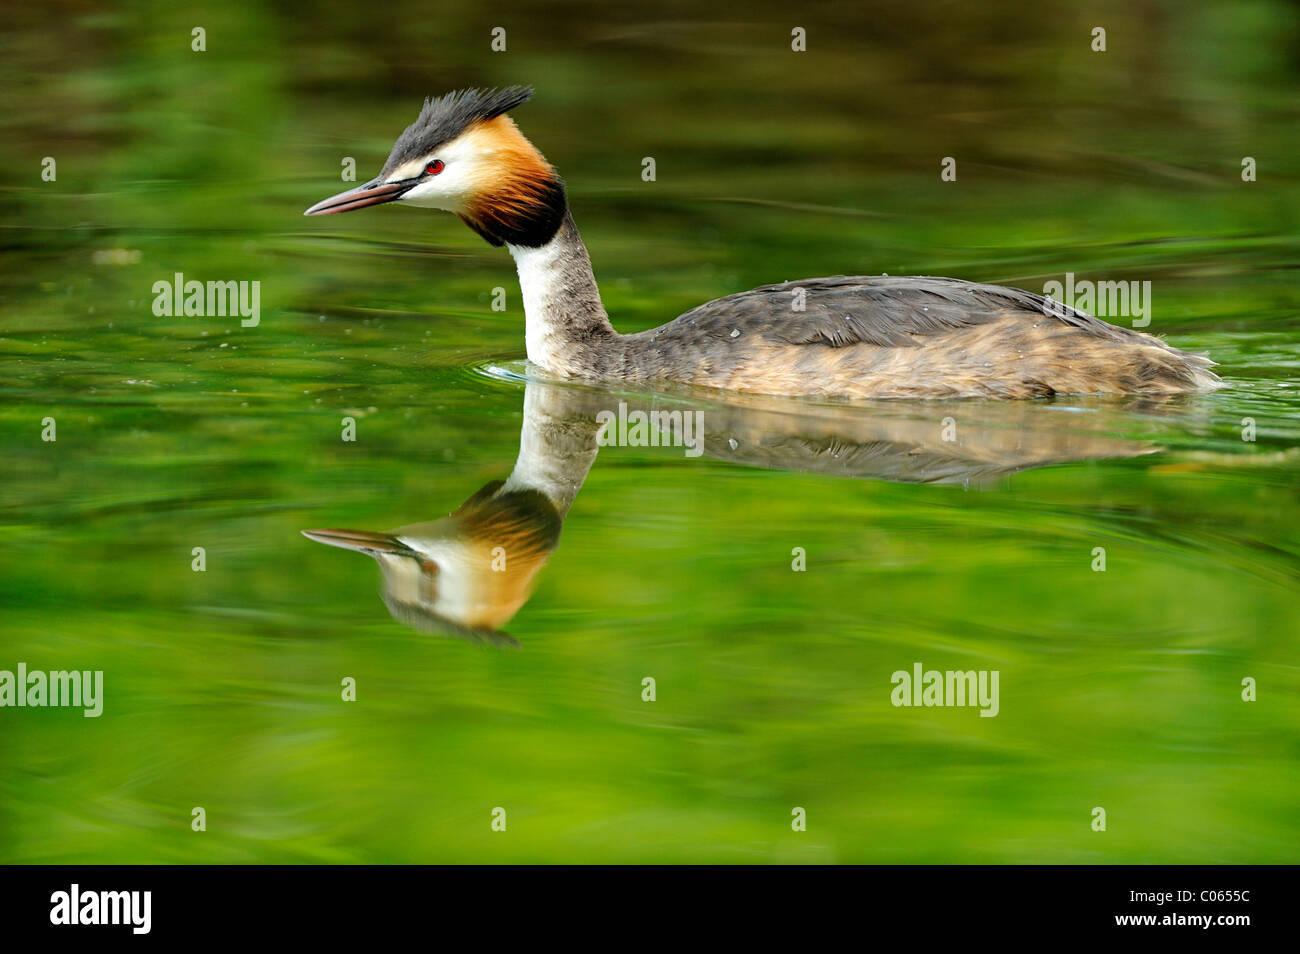 Great Crested Grebe (Podiceps cristatus) with its reflection - Stock Image